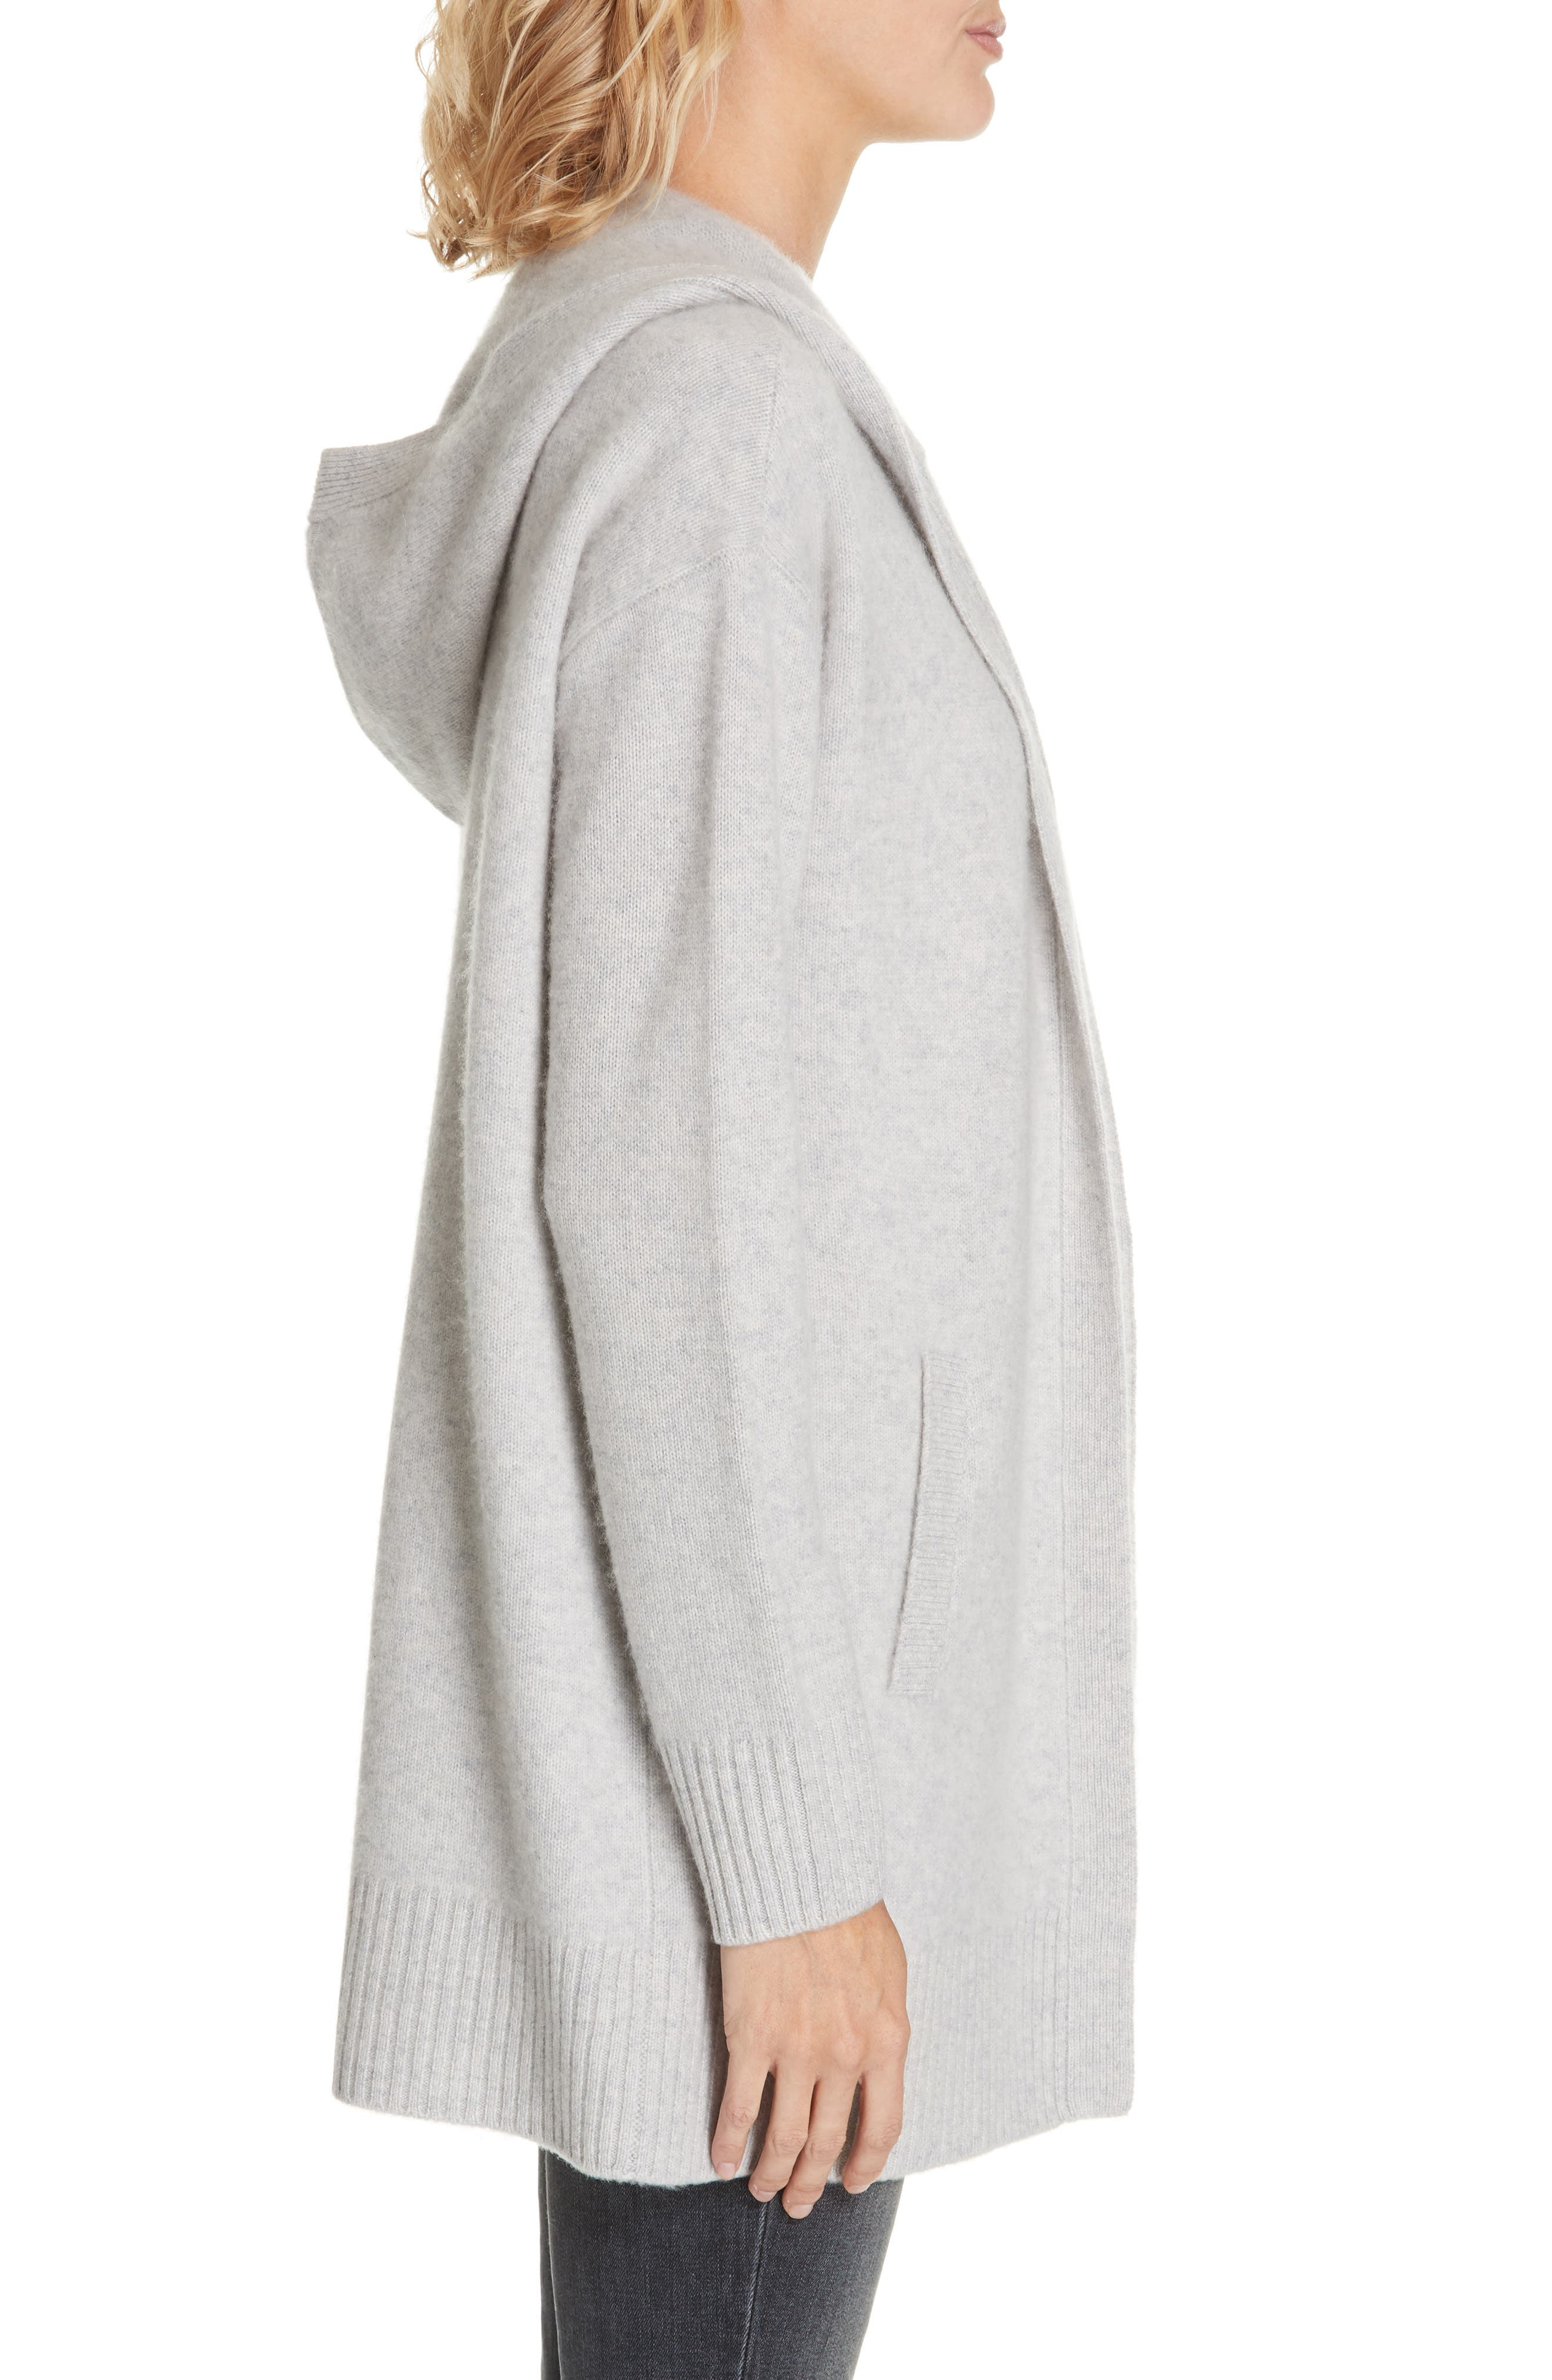 NORDSTROM SIGNATURE, Hooded Boiled Cashmere Cardigan, Alternate thumbnail 3, color, 050